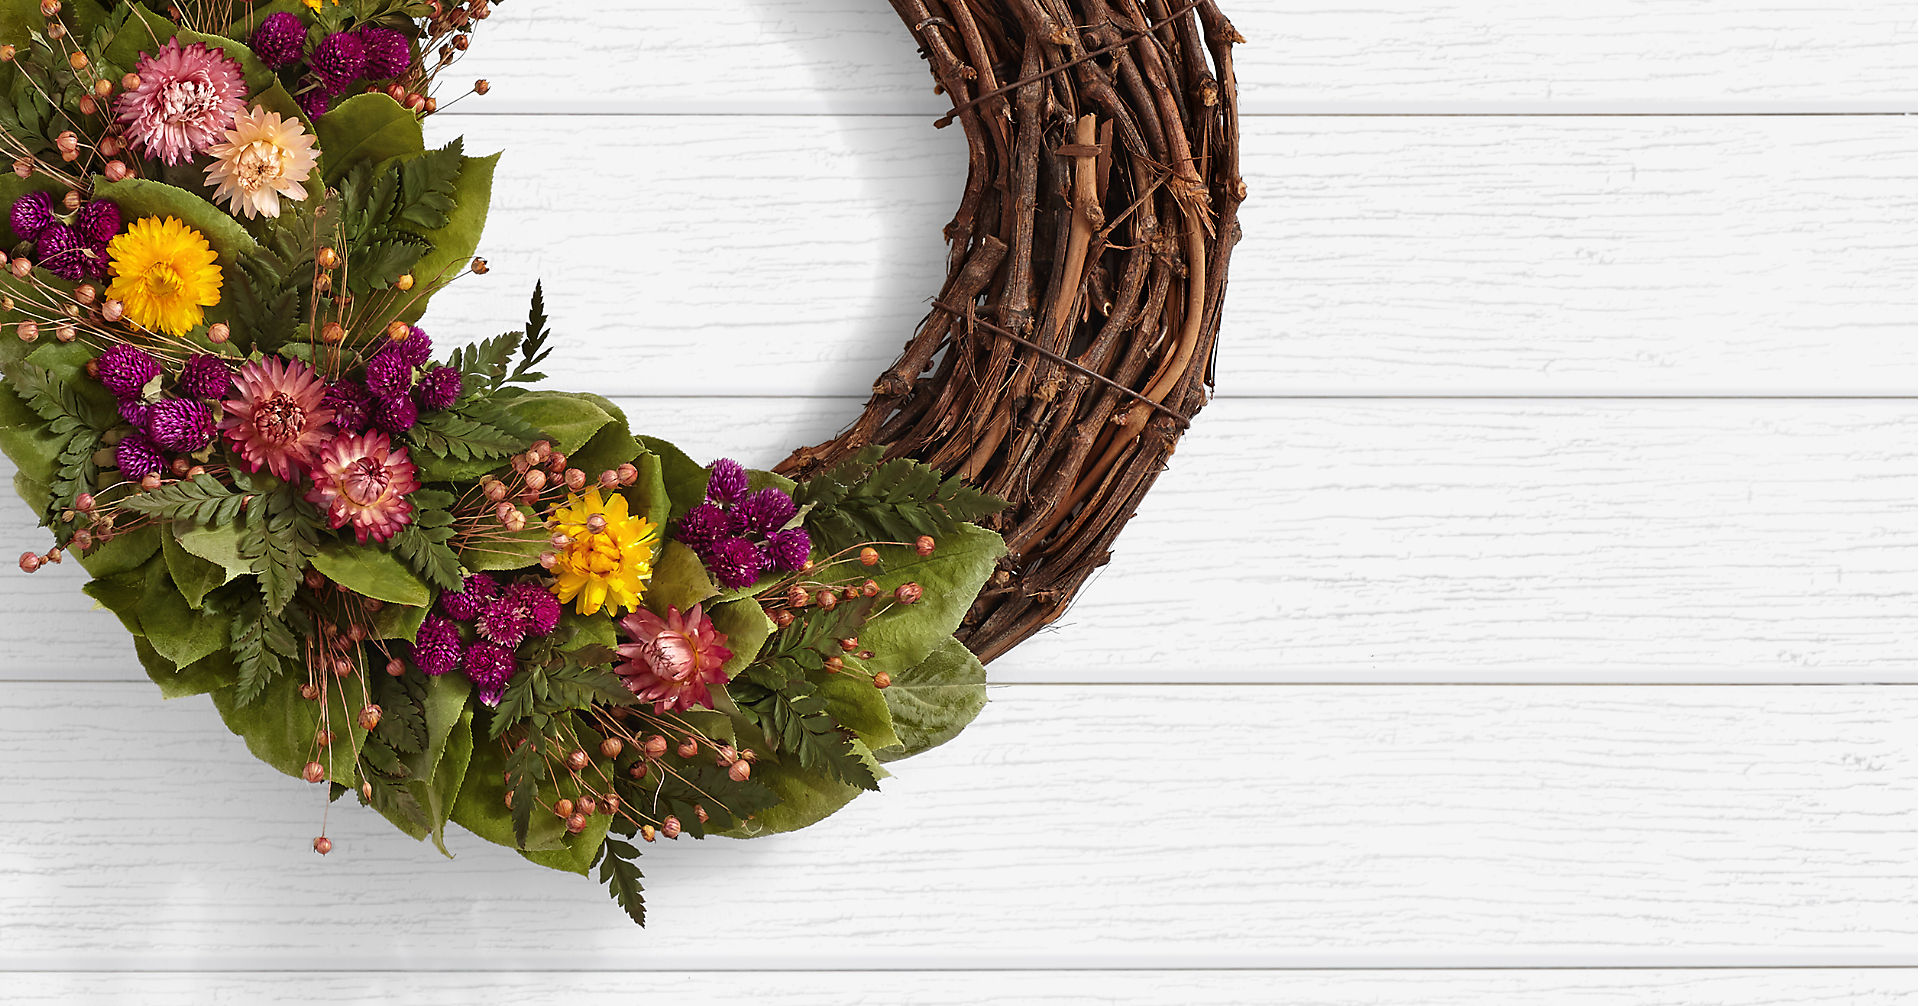 Garden Strawflower Wreath - Image 2 Of 2